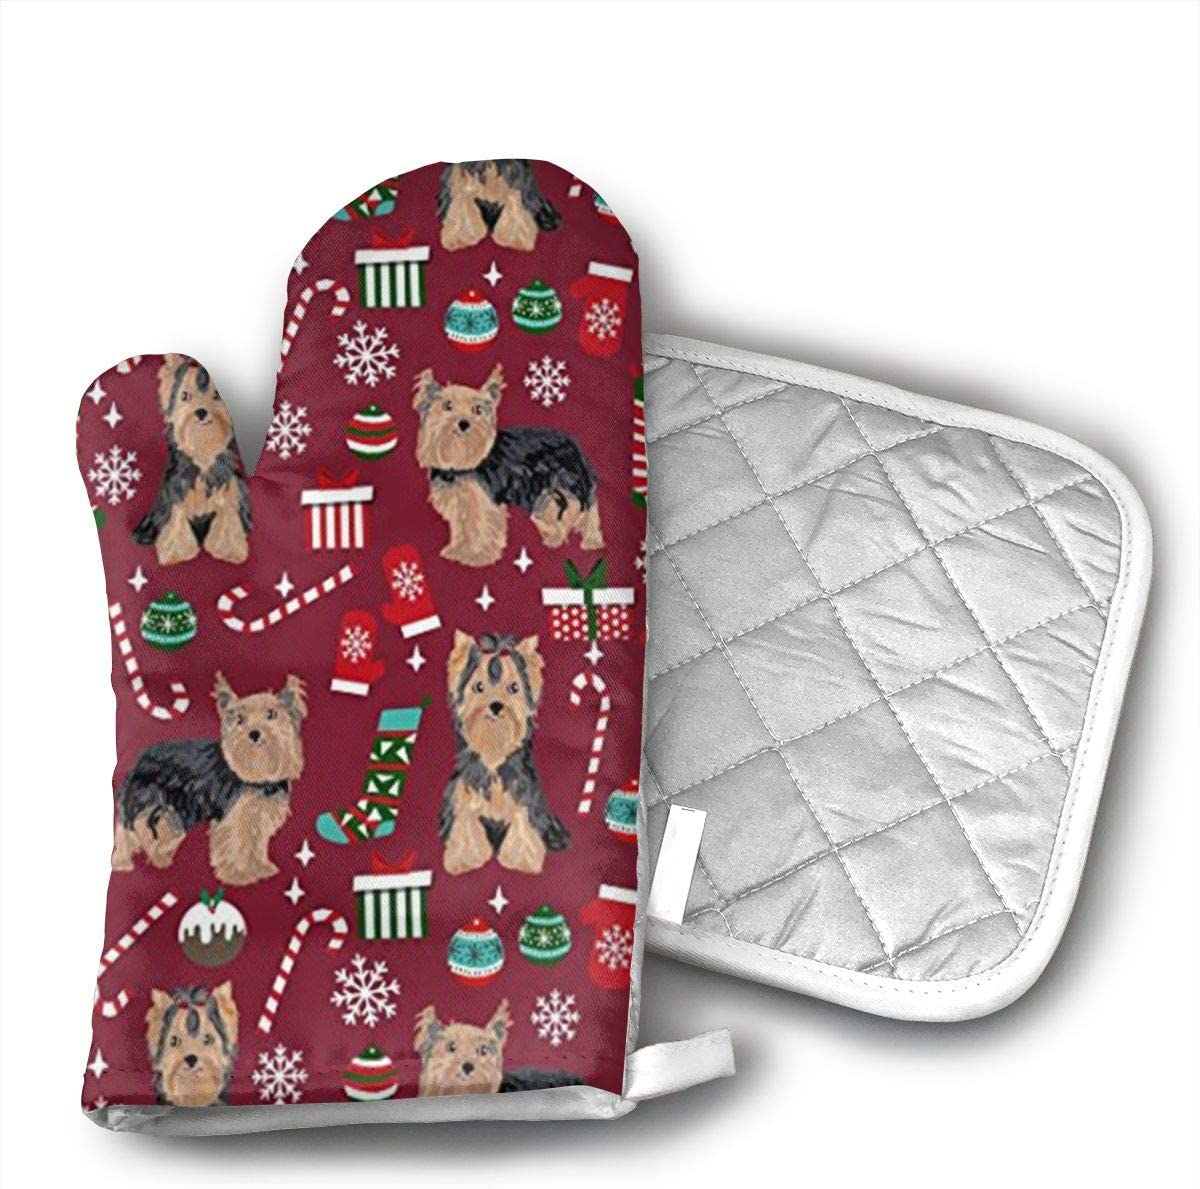 Sjiwqoj8 Yorkie Christmas Dog Kitchen Oven Mitts,Oven Mitts and Pot Holders,Heat Resistant with Quilted Cotton Lining,Cooking,Baking,Grilling,Barbecue